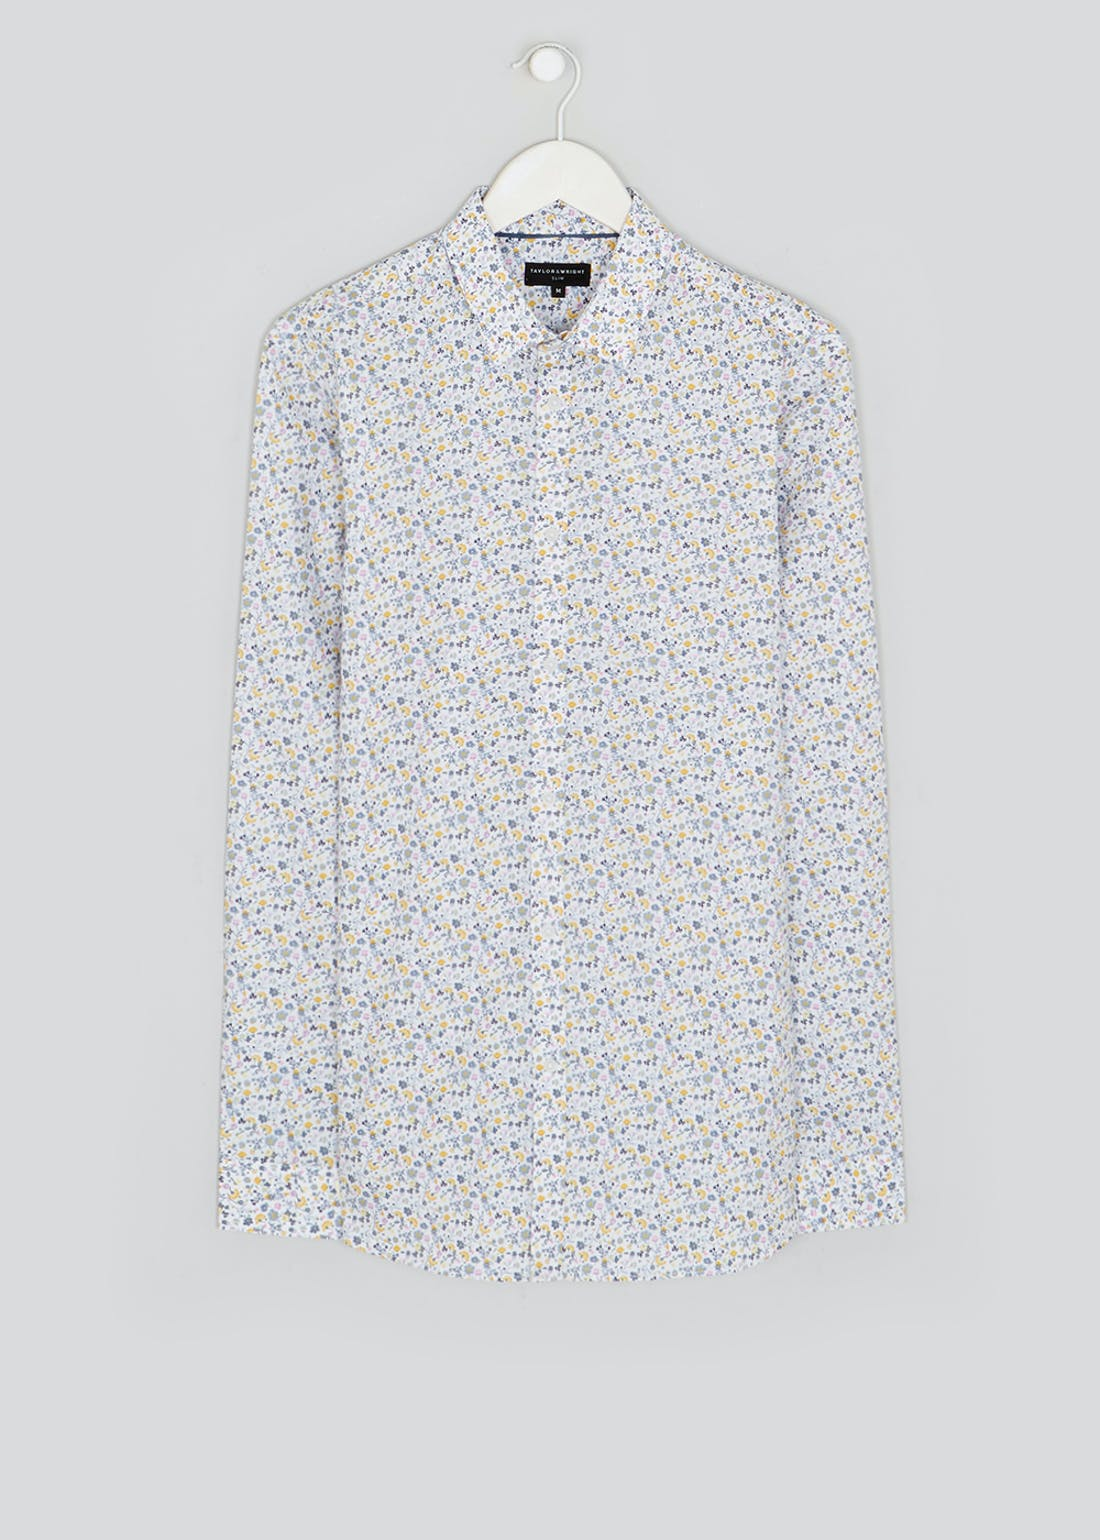 Taylor & Wright Long Sleeve Slim Fit Floral Shirt